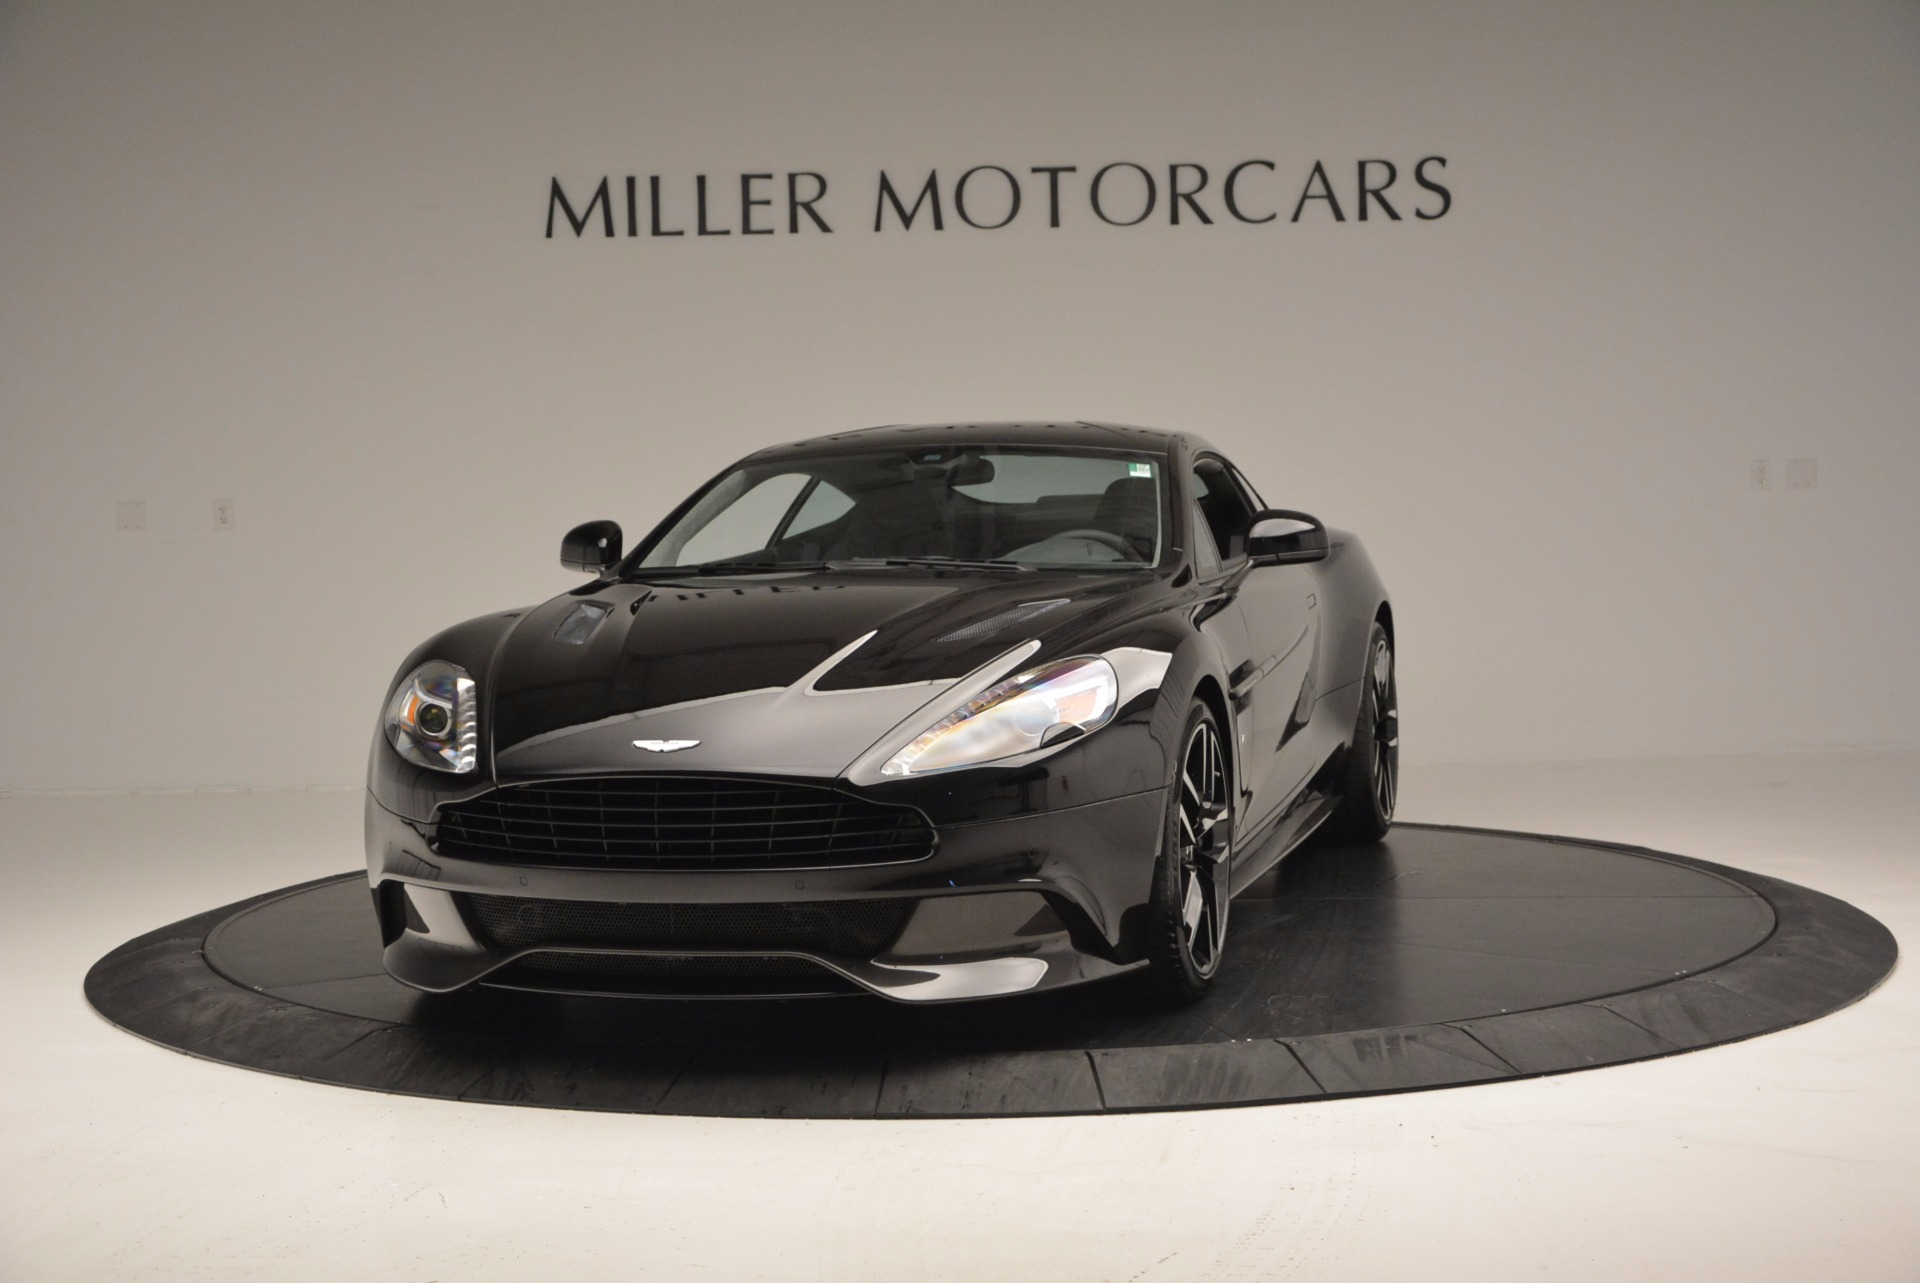 Used 2017 Aston Martin Vanquish Coupe for sale Sold at Bentley Greenwich in Greenwich CT 06830 1